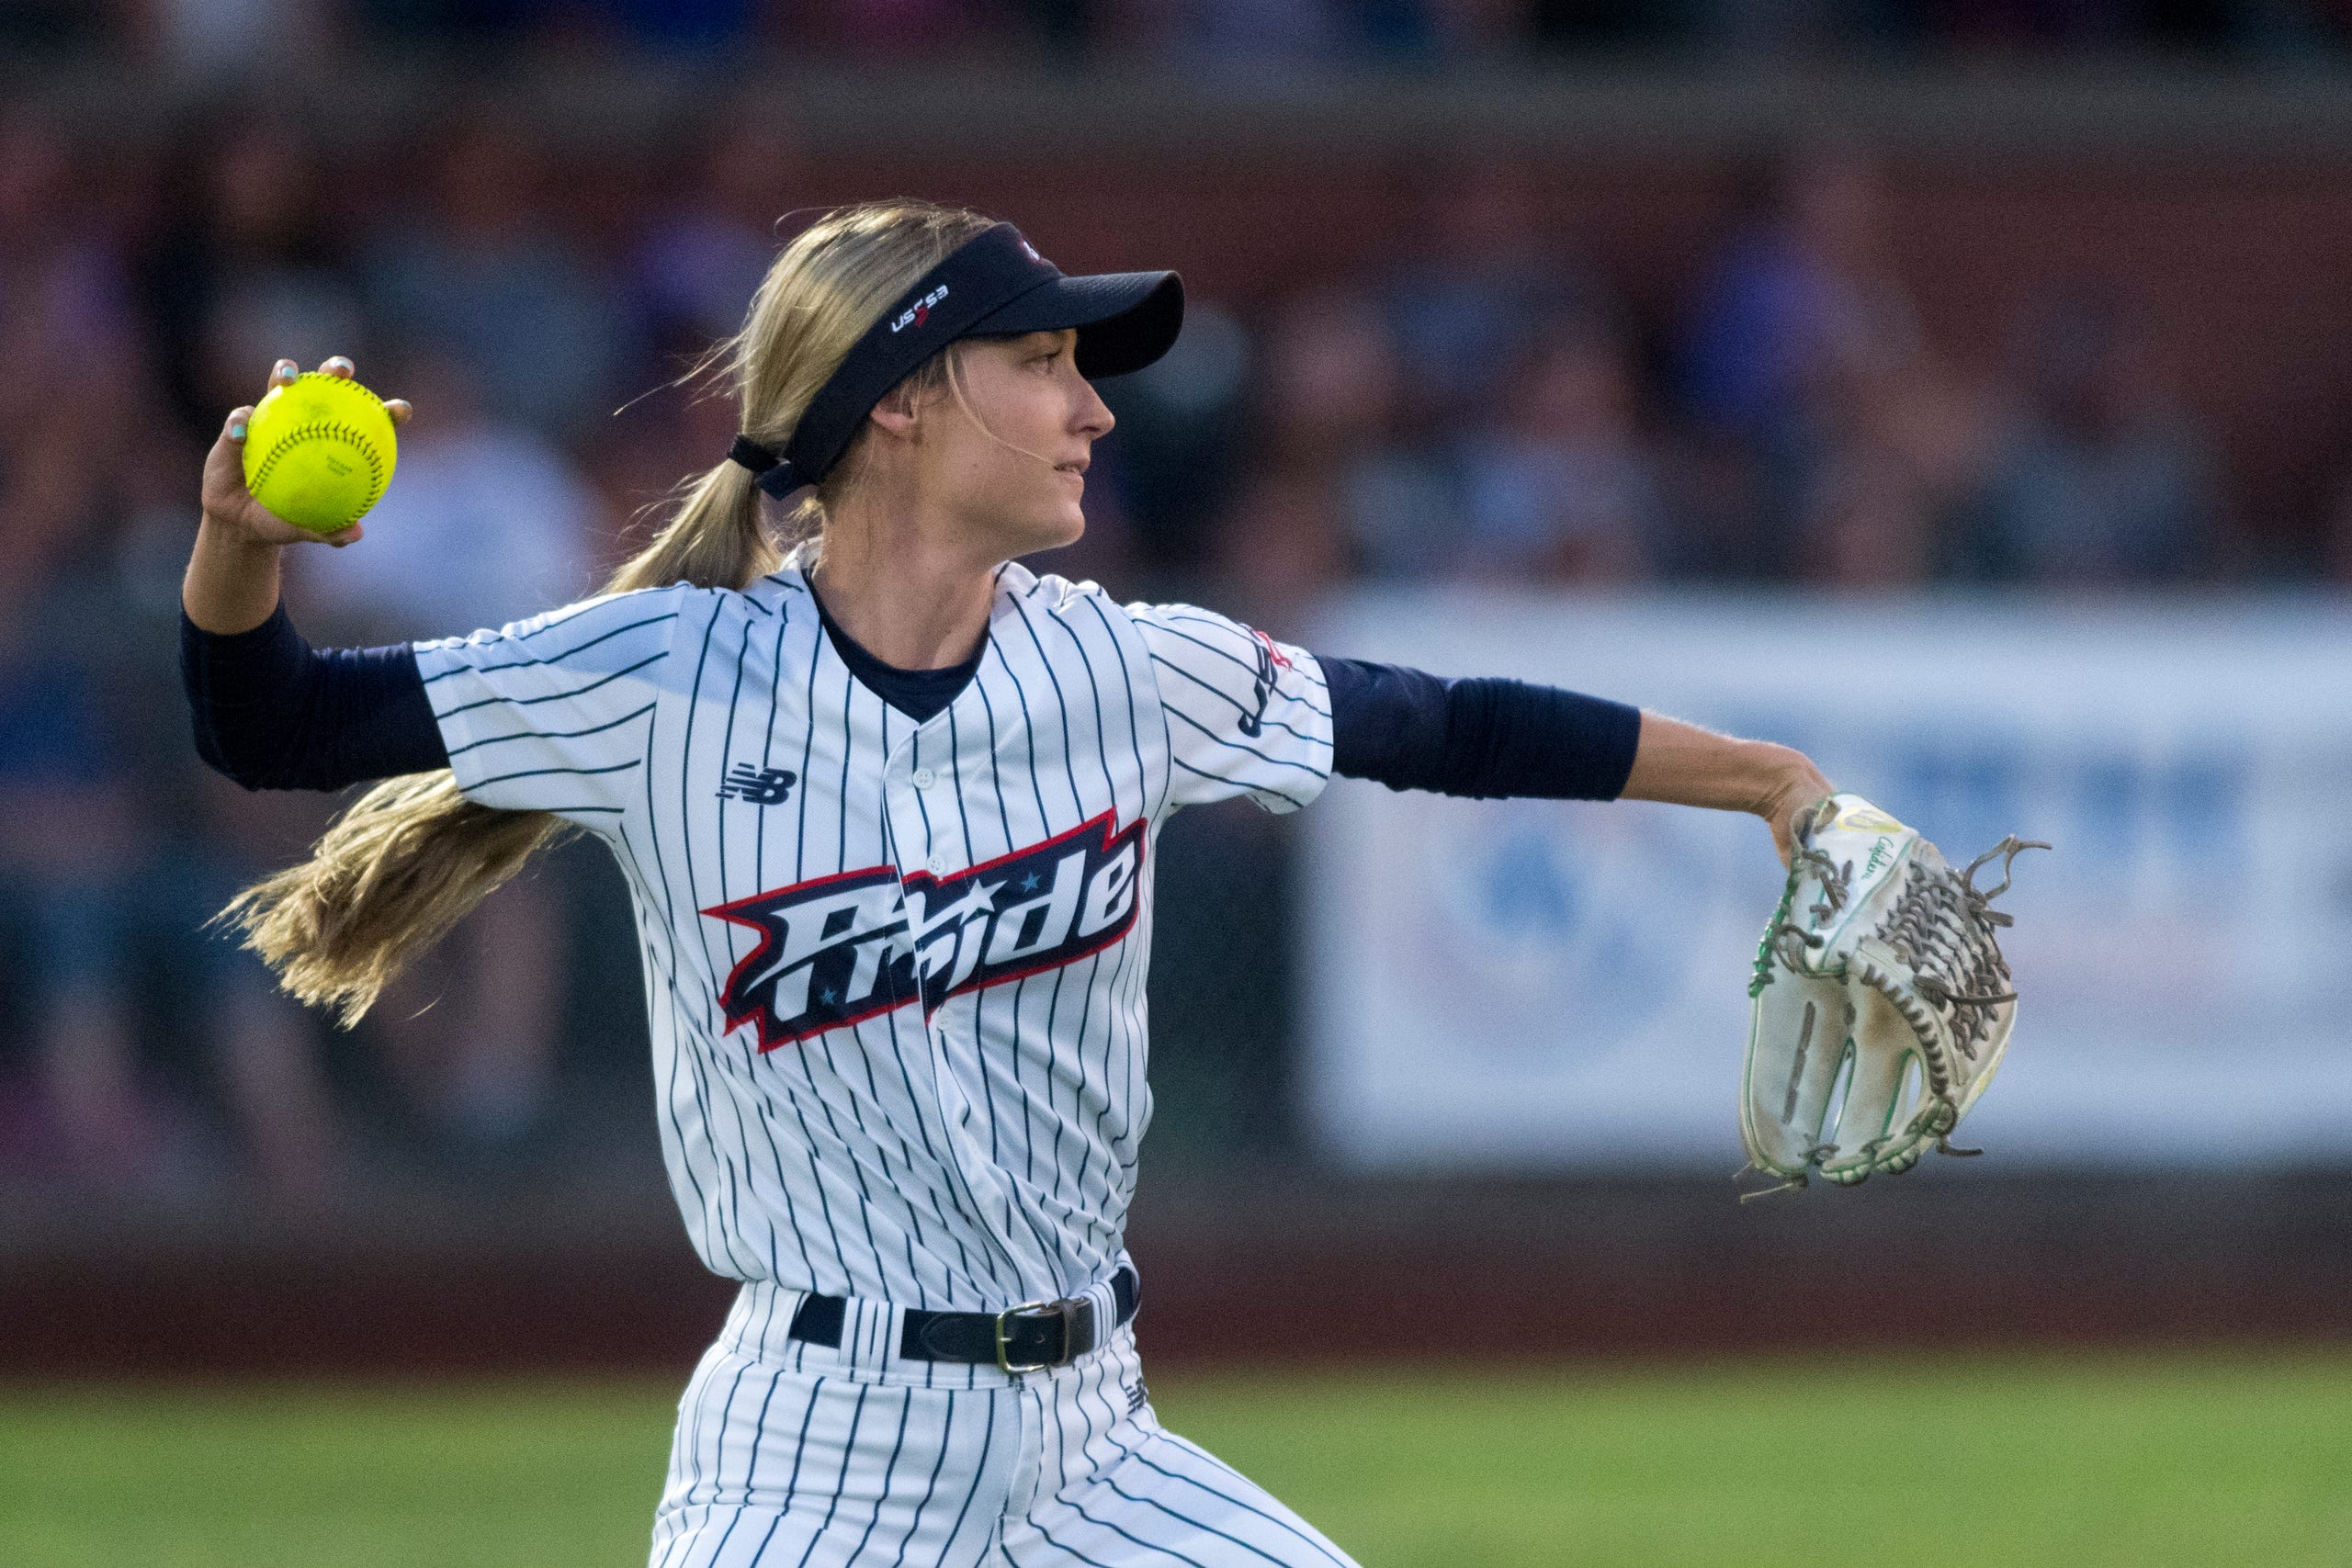 USSSA Pride's Haley Cruse (10) throws from the outfield as the USSSA Pride takes on Team Florida in an exhibition game at Bosse Field in Evansville, Ind., Wednesday evening, July 14, 2021.